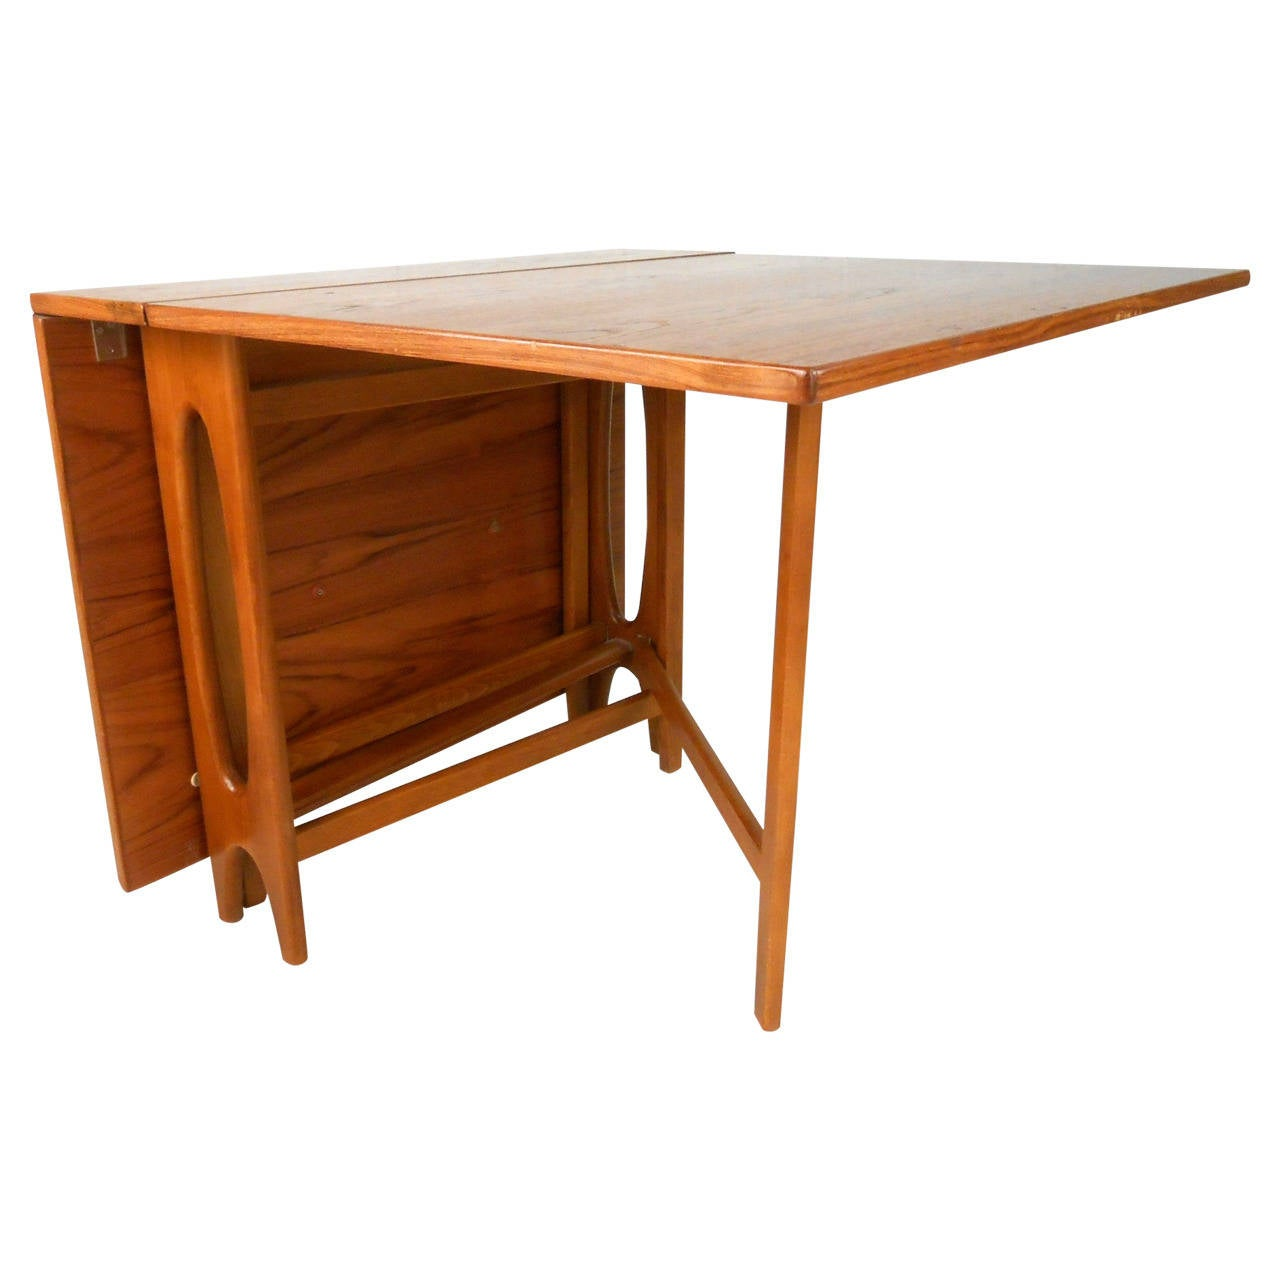 Mid century modern bruno mathsson style teak drop leaf for Mid century modern dining table